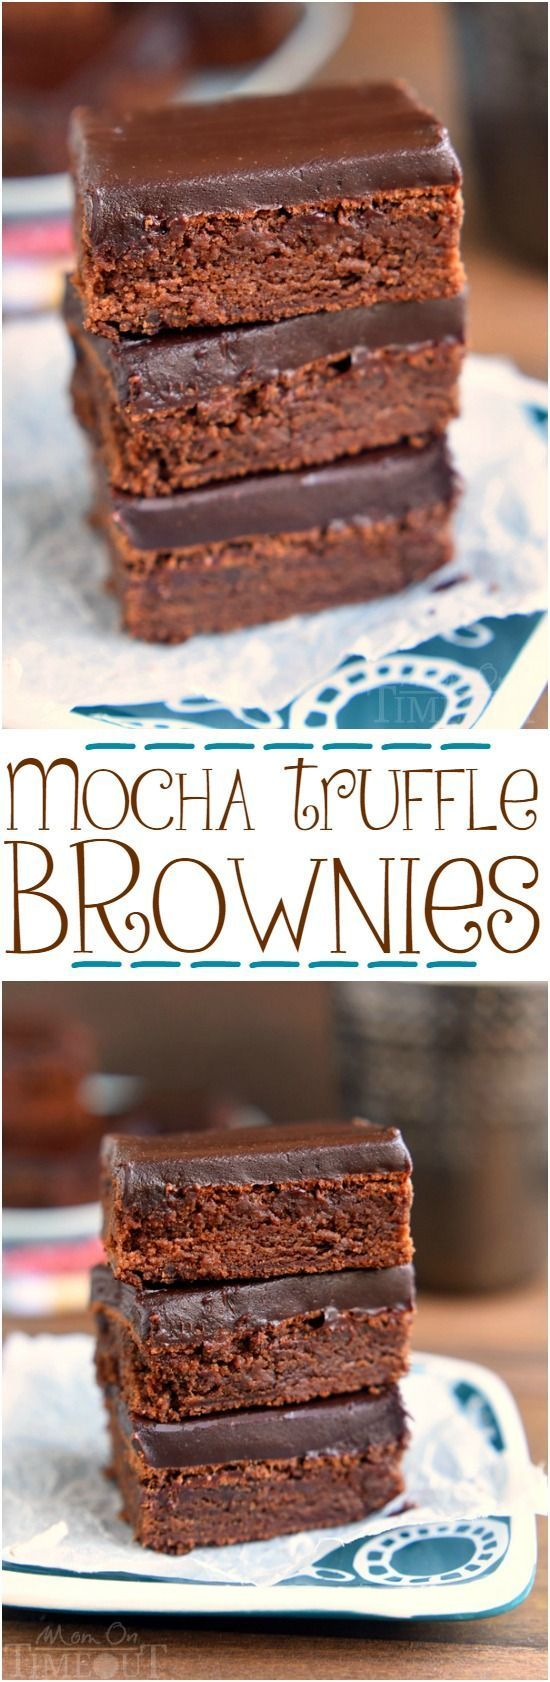 These decadent Mocha Truffle Brownies are just what your sweet tooth is craving....  - Blogger Rec